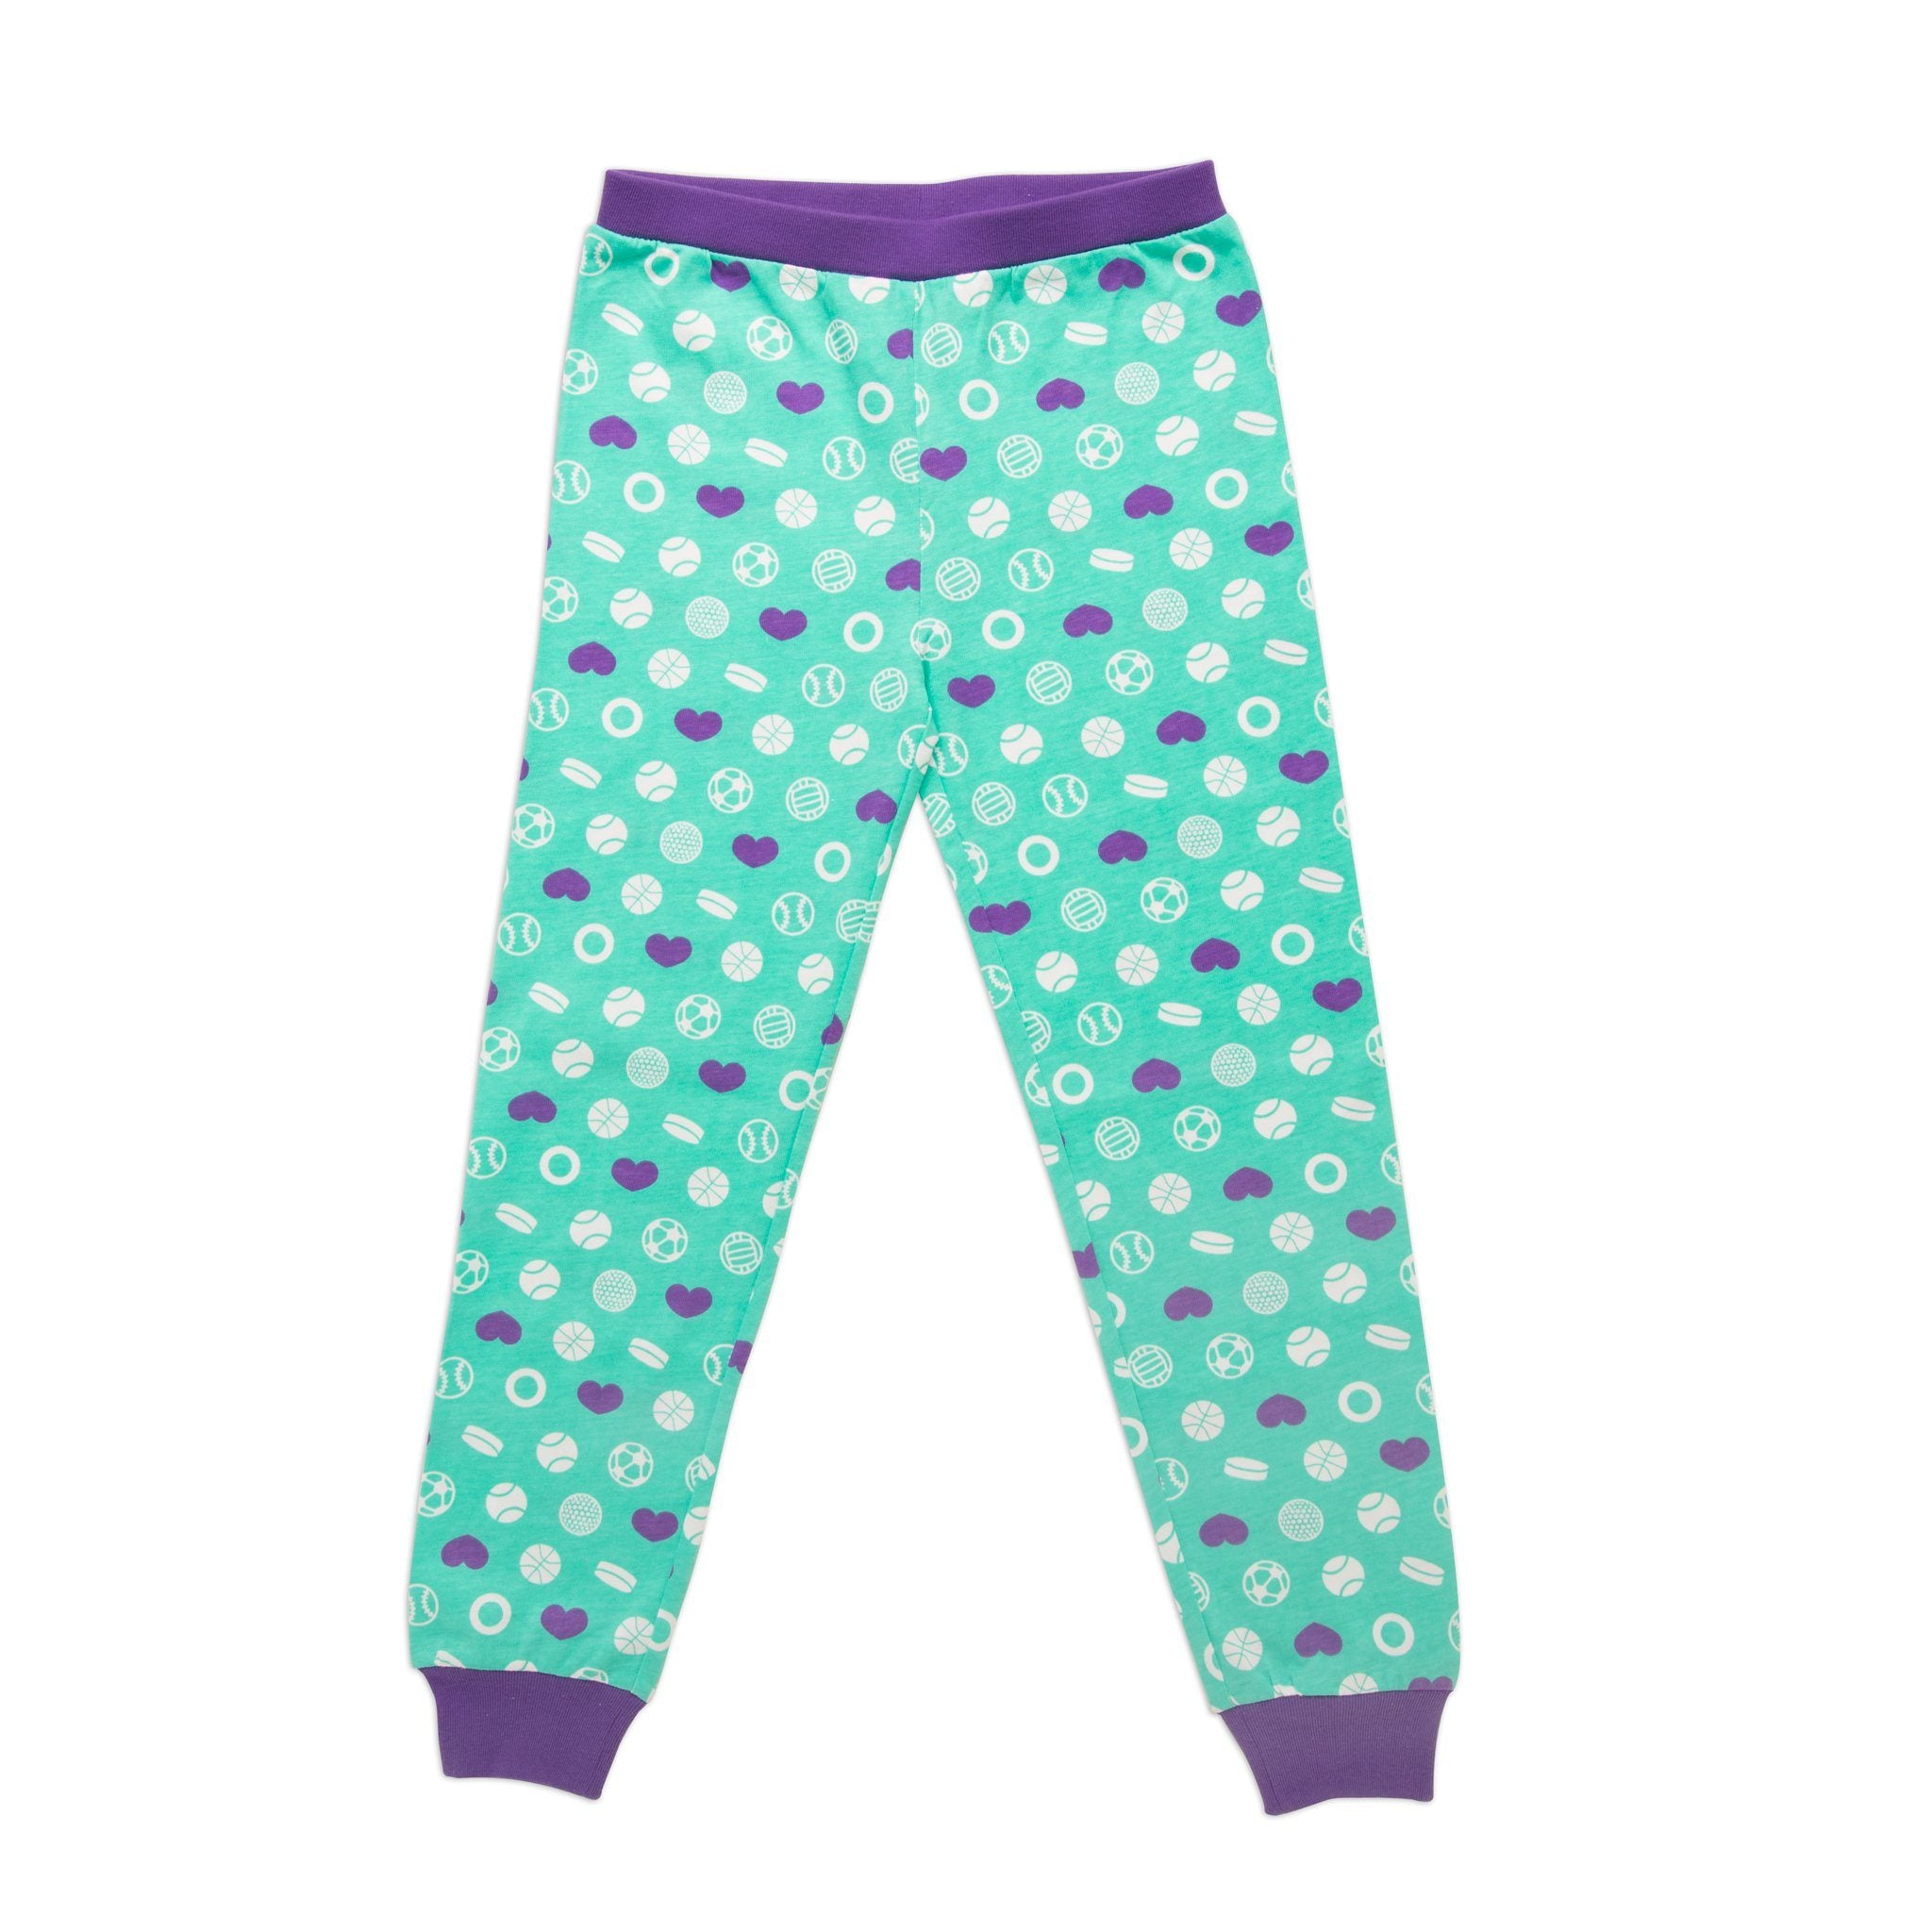 Dream Team sporty matching girl-sized sports-themed teal and purple patterned PJ pants in varying sizes for girls.